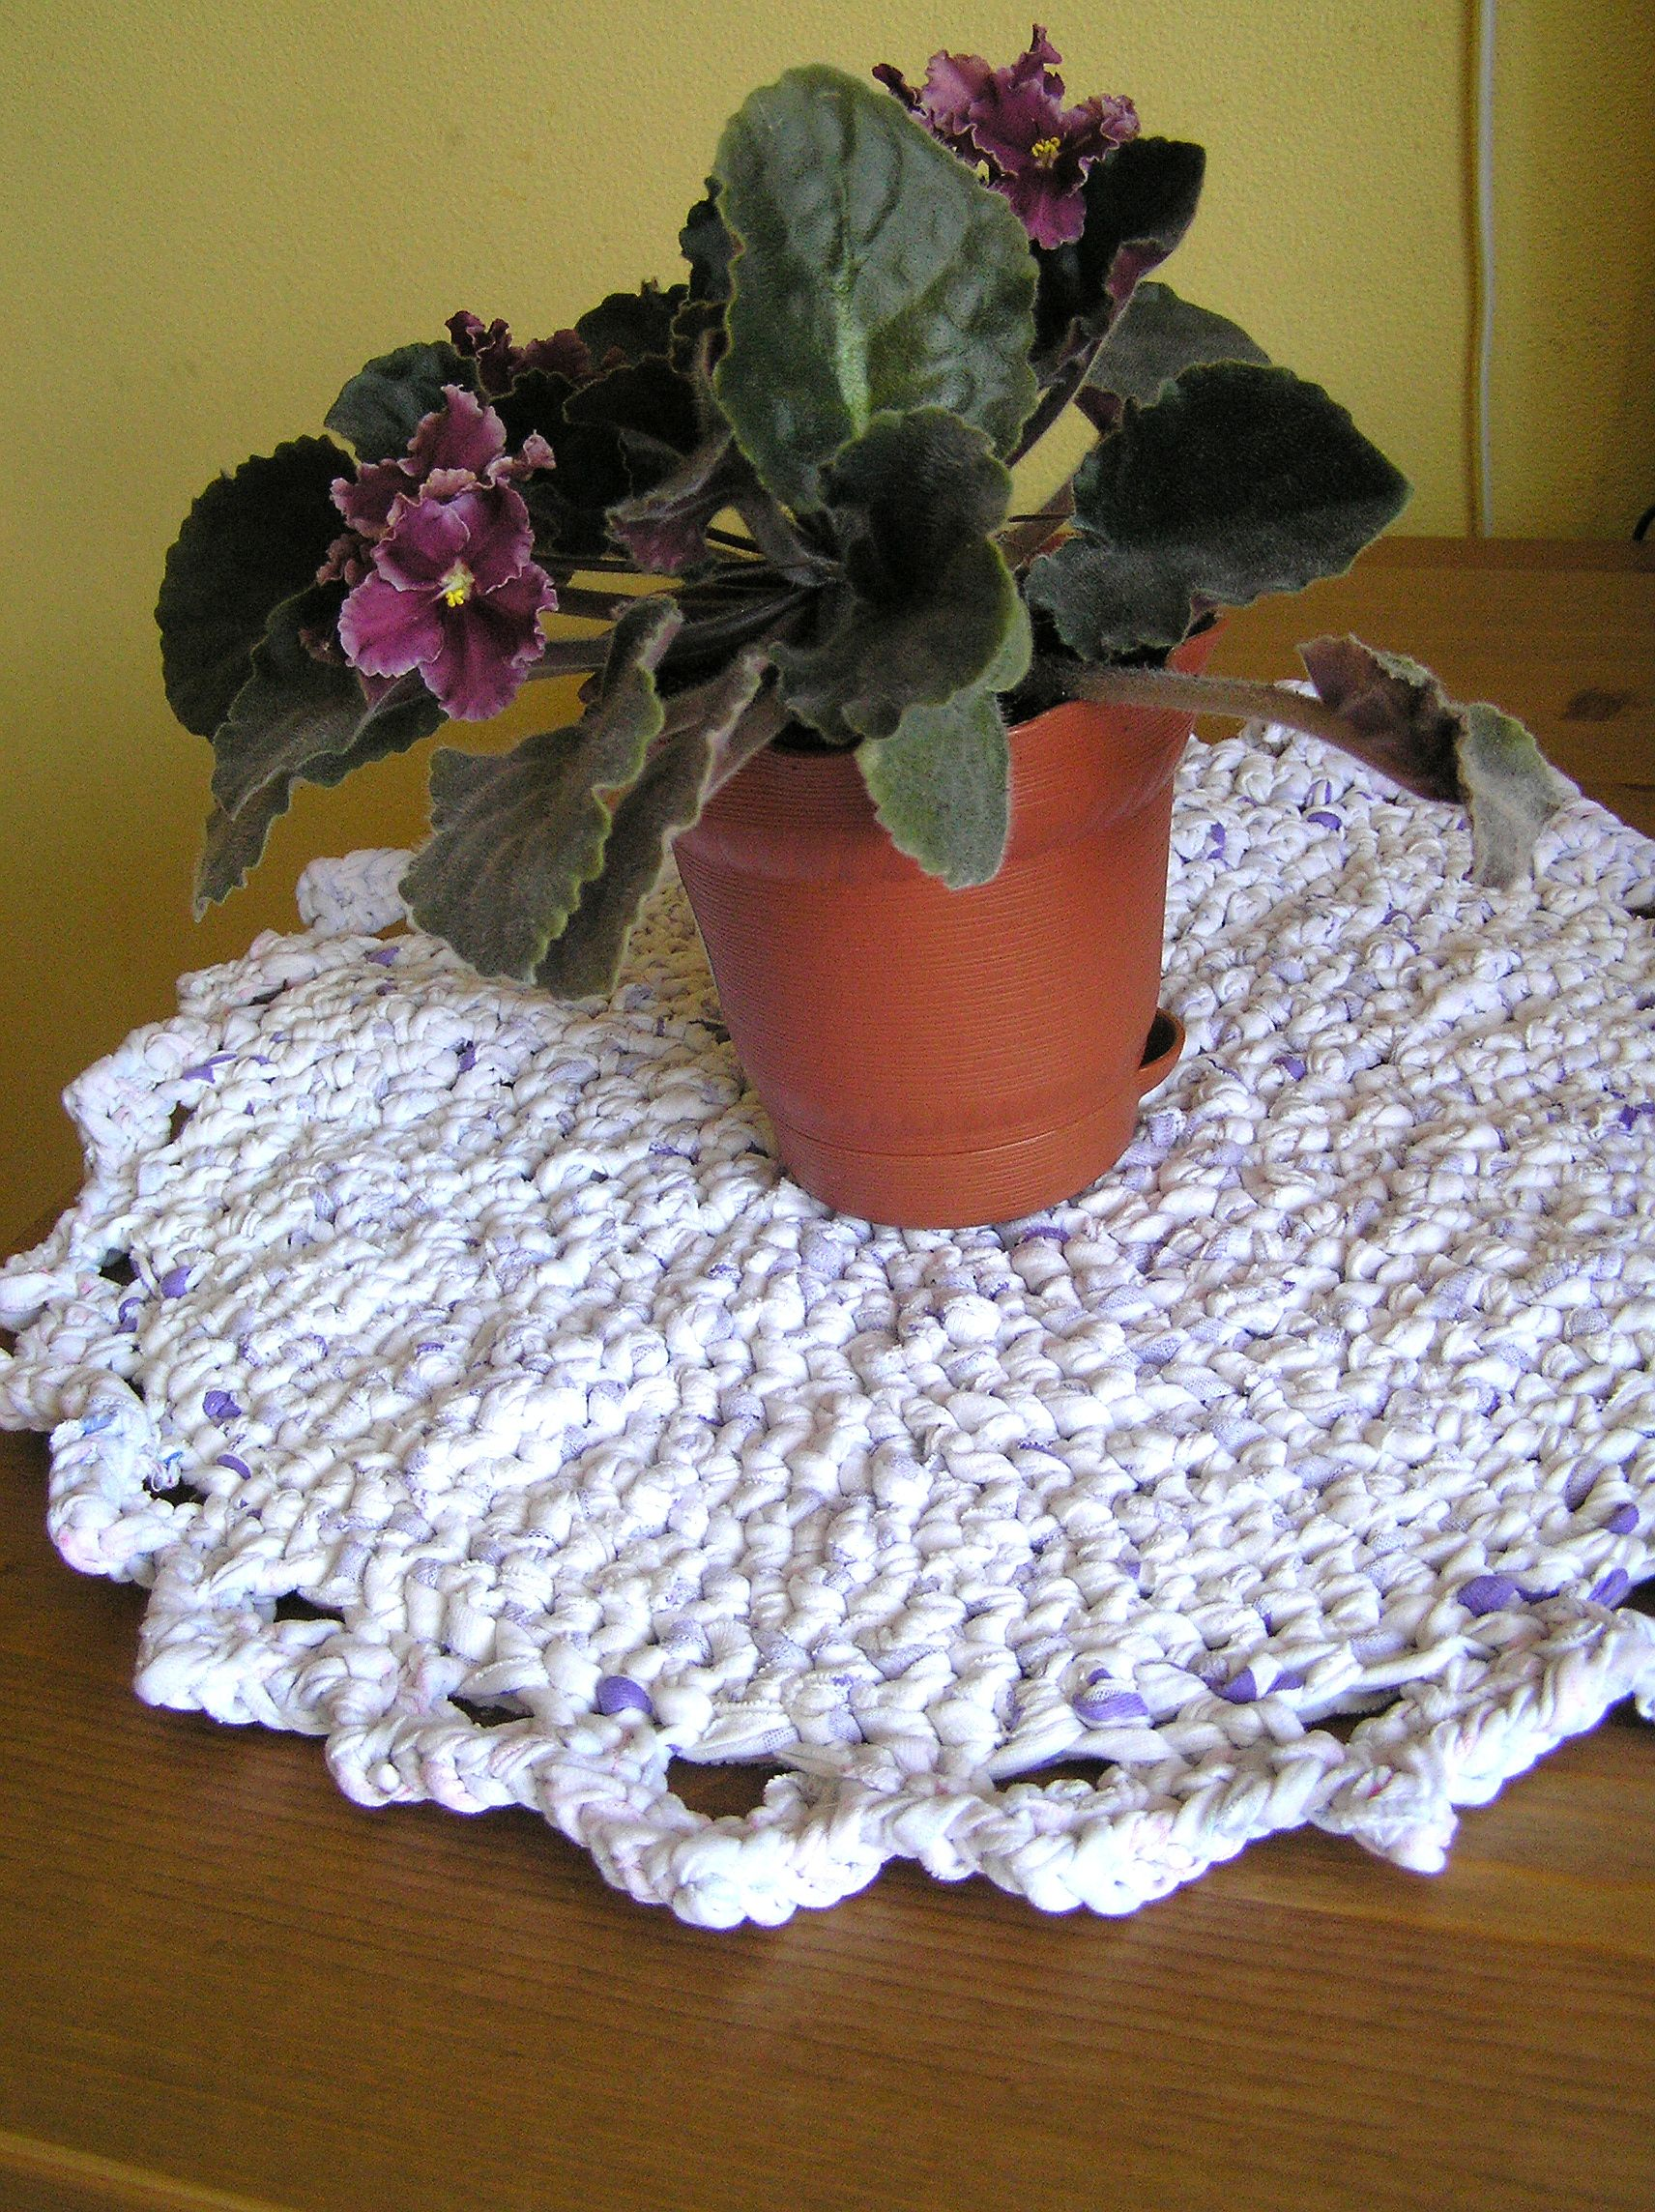 Round Placemat Pastel Table Cats Pets Mat Small Rag, Play Mat, Small Rag  Rug, White Lavender Small Round Crochet Cat Cat Mat, Chair Seat Pad, Cats  Bed Beds, ...